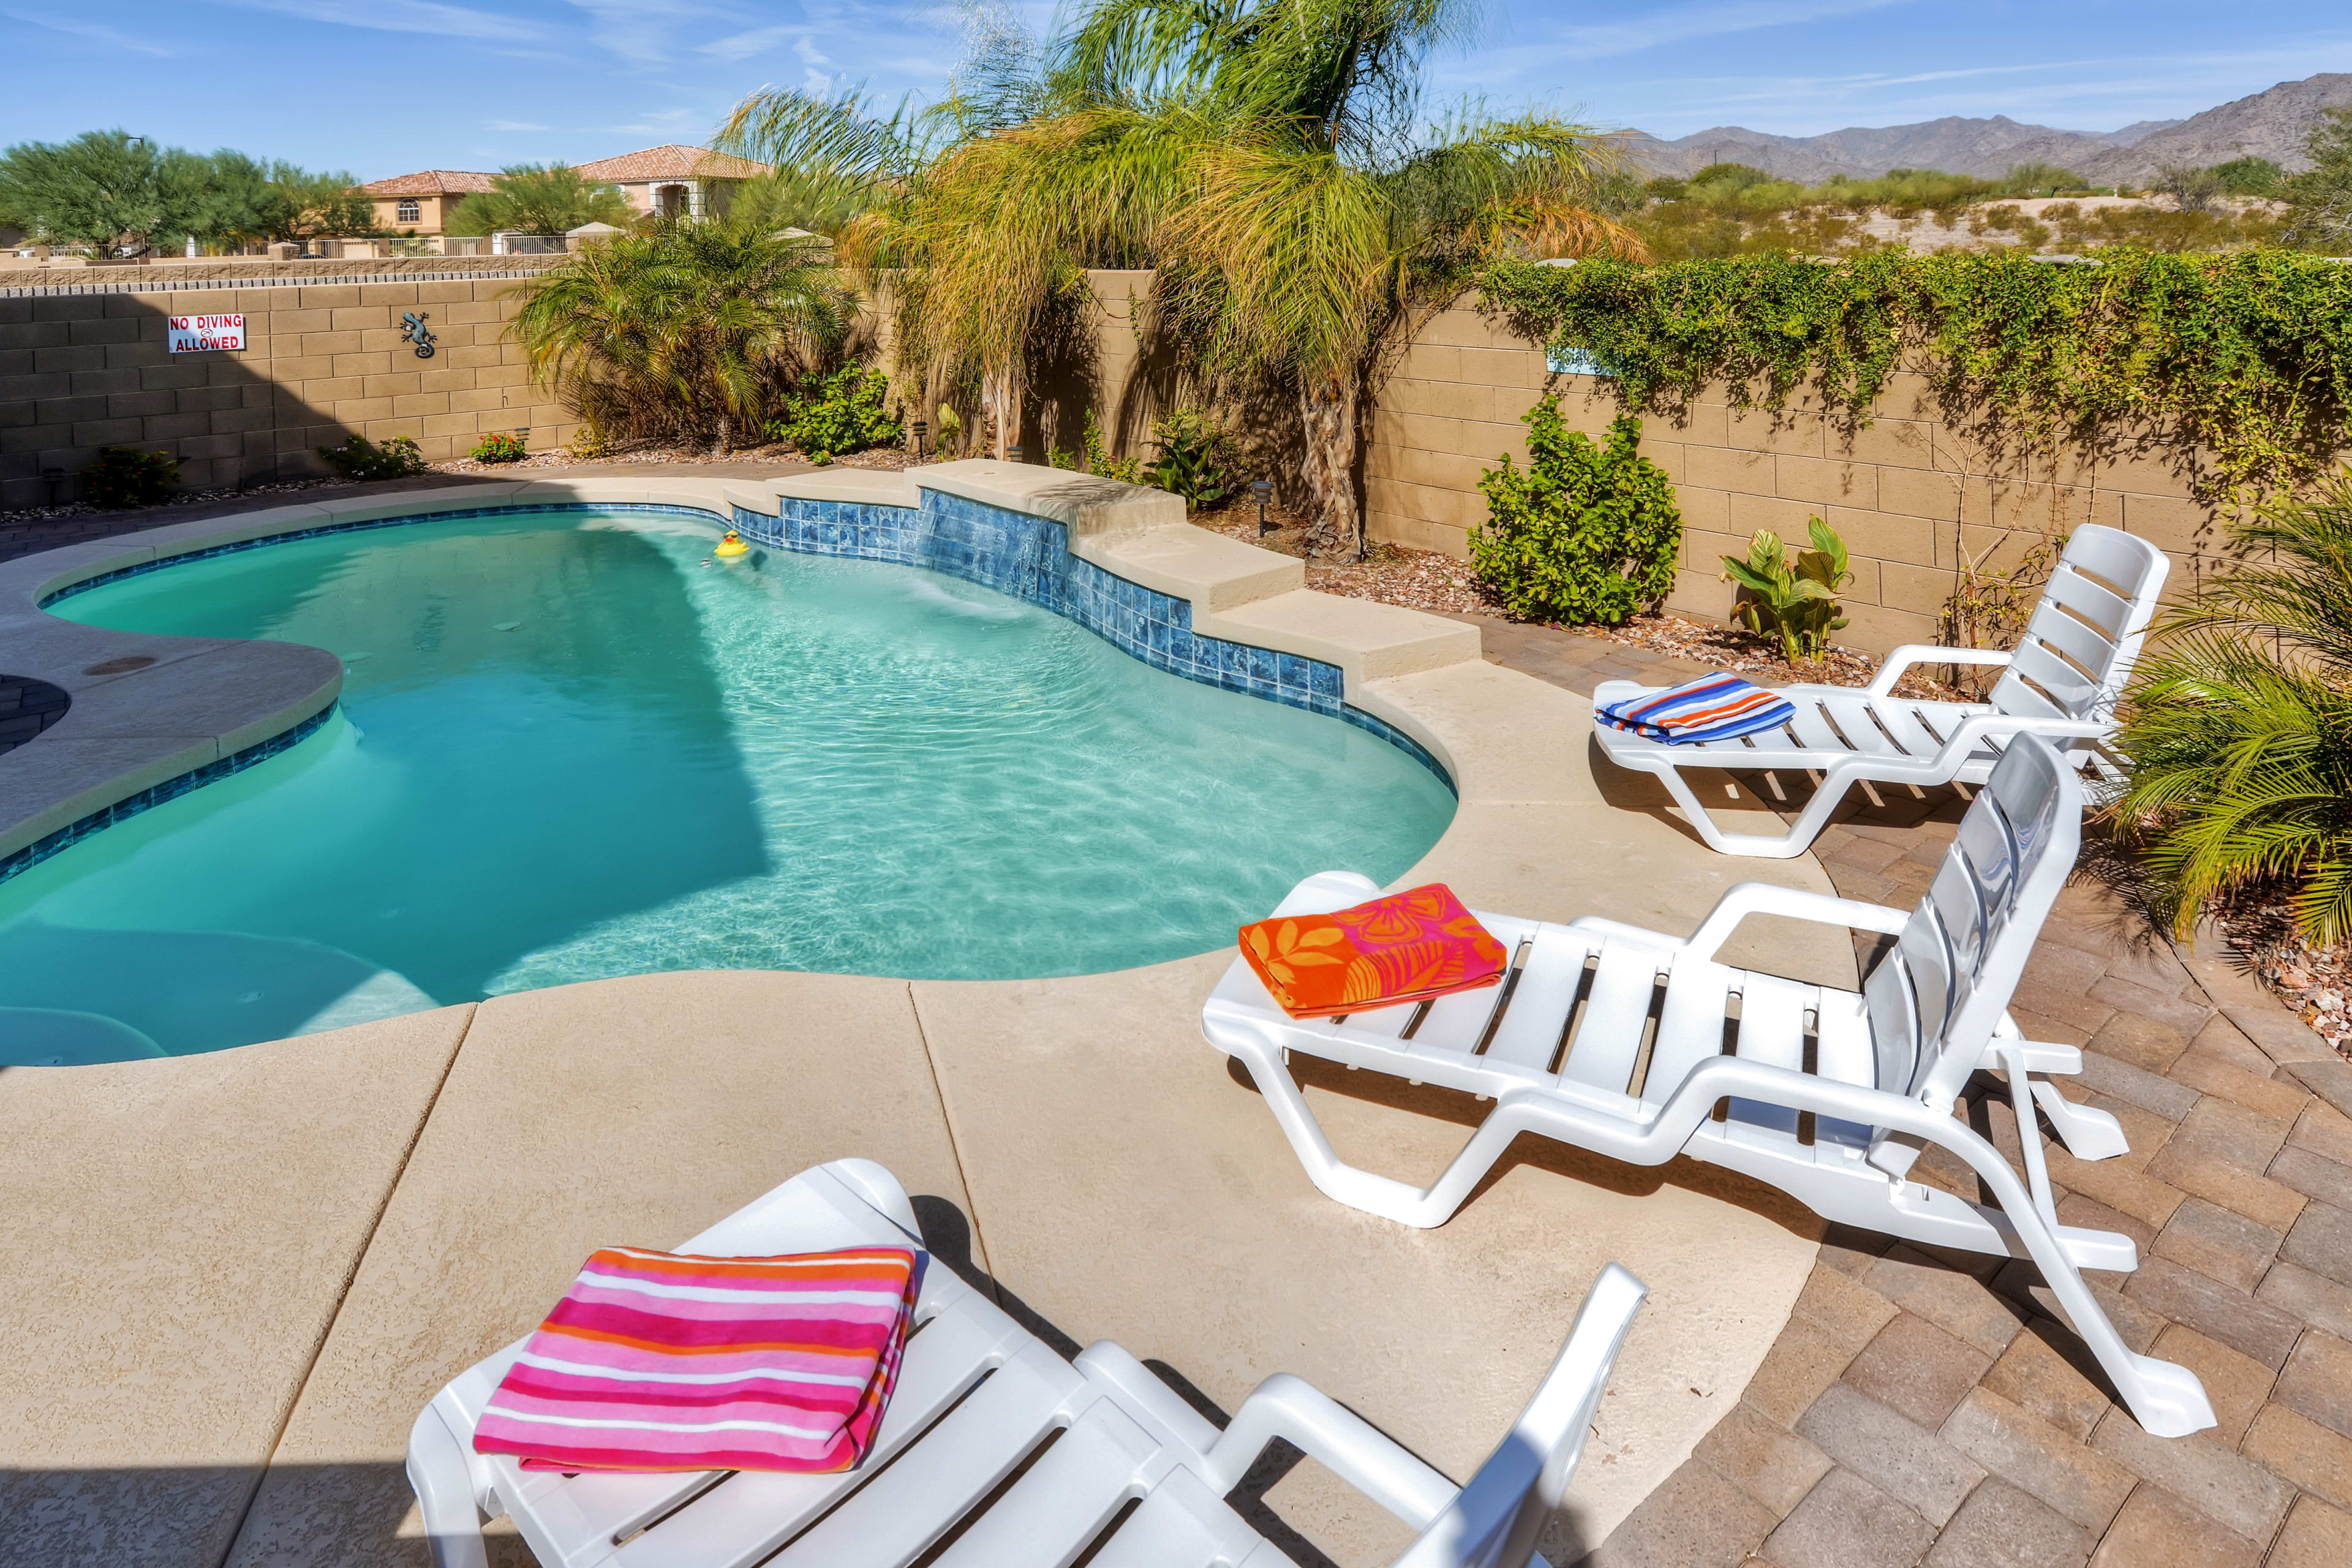 Cool off in the private pool!